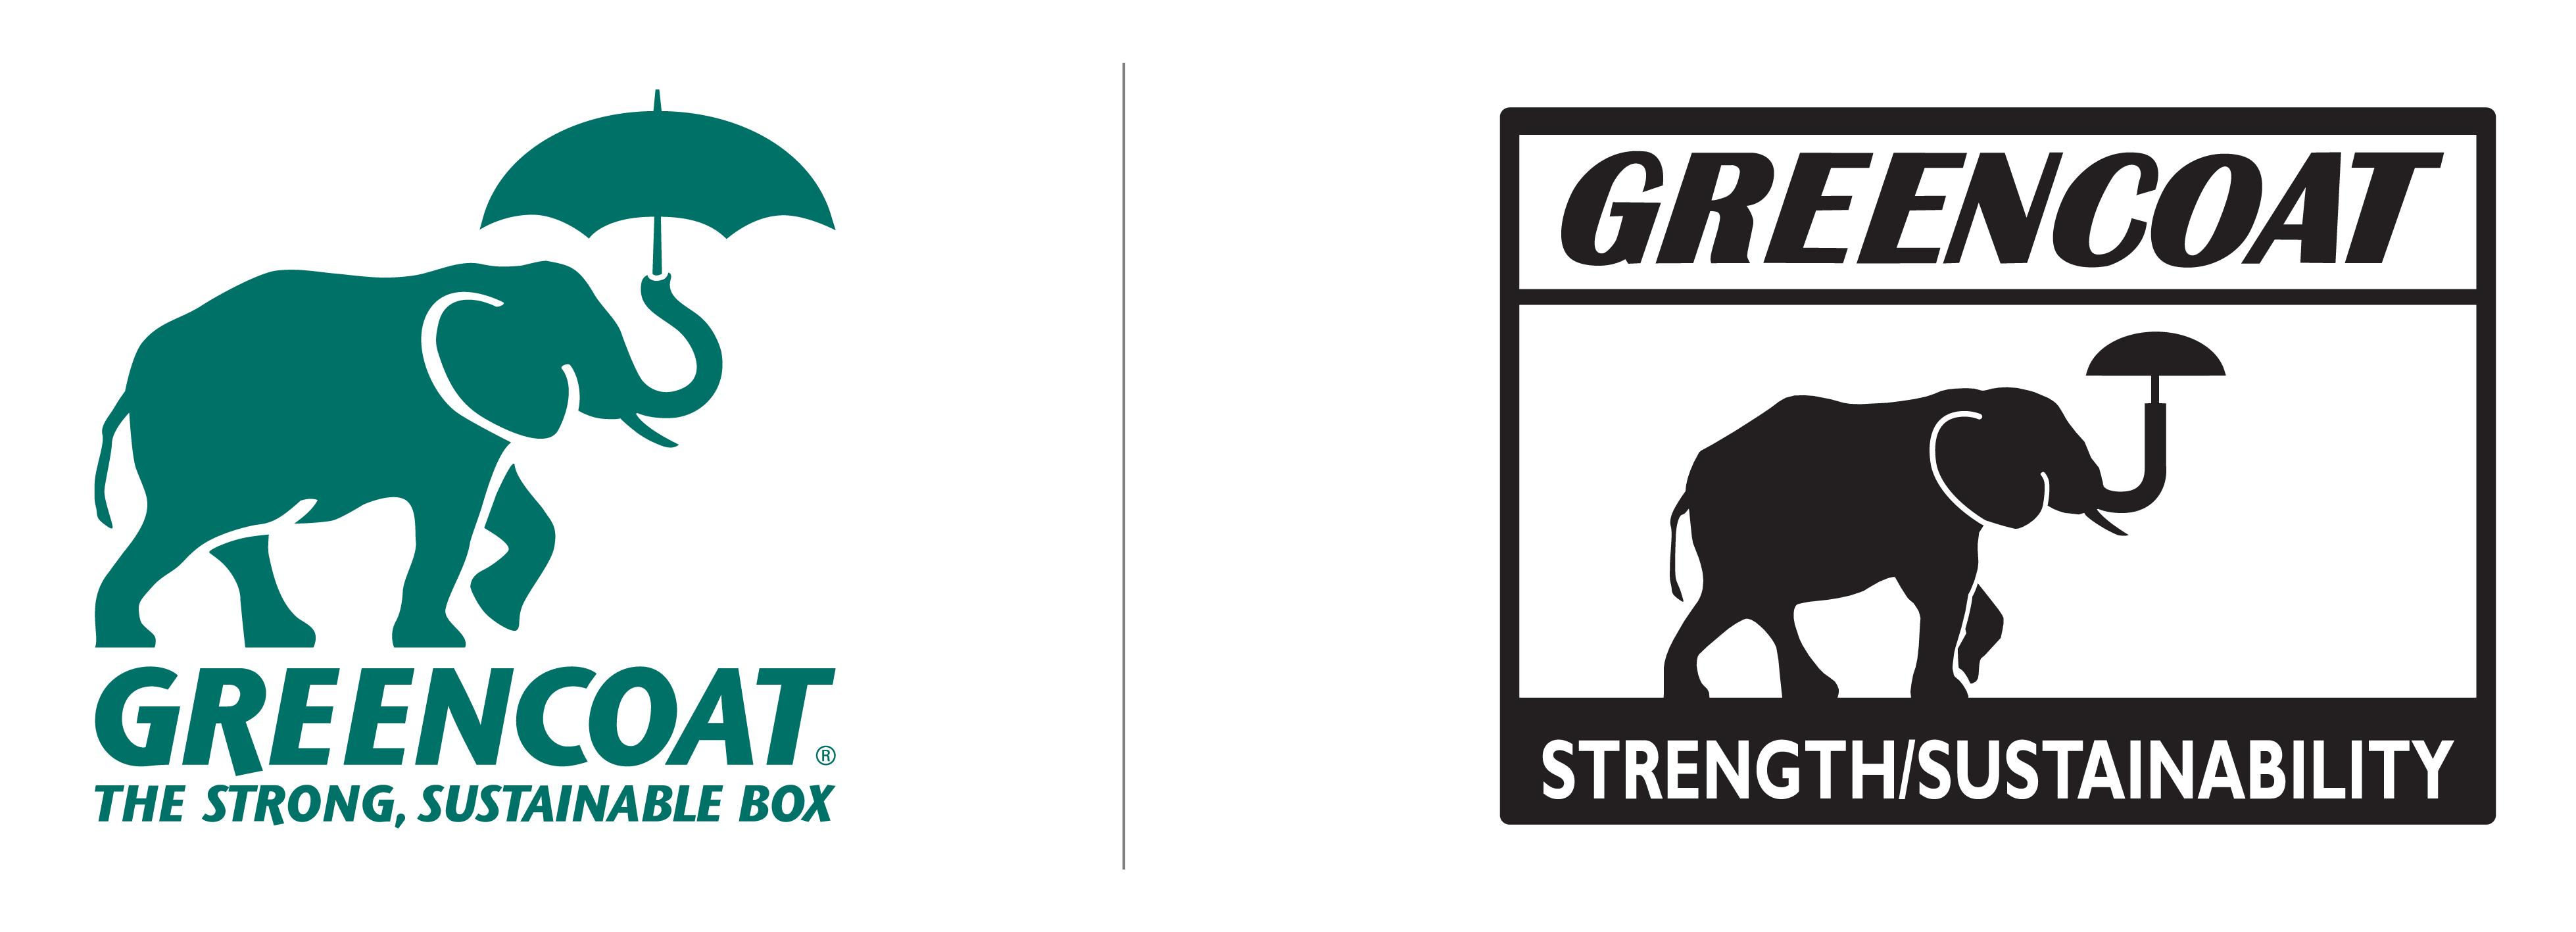 Greencoat Brand Logo, New and Old